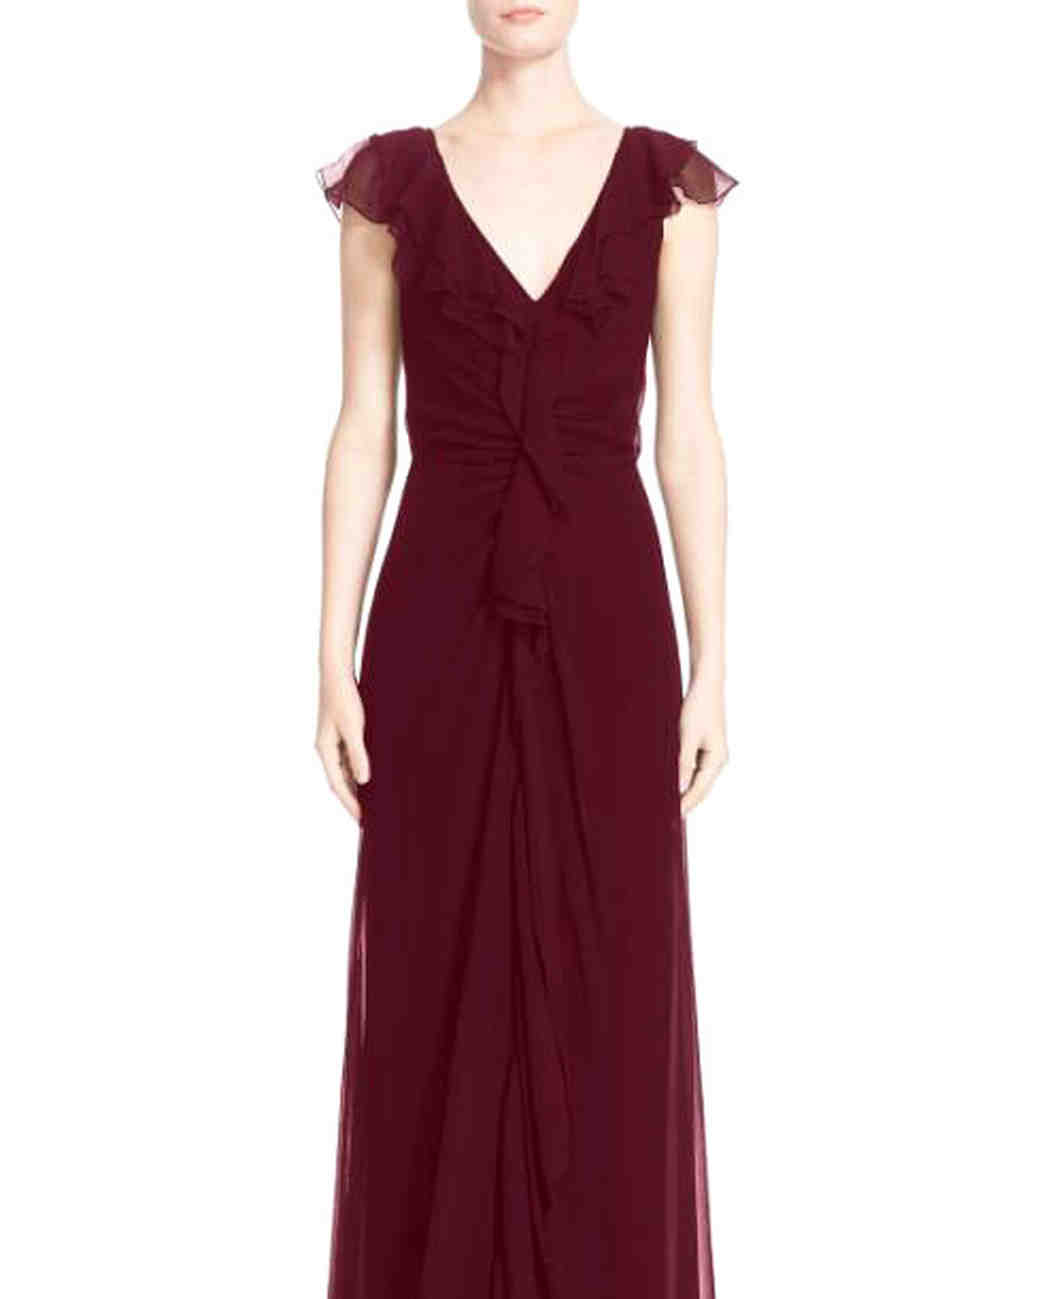 24 Burgundy Mother-of-the-Bride Dresses | Martha Stewart Weddings